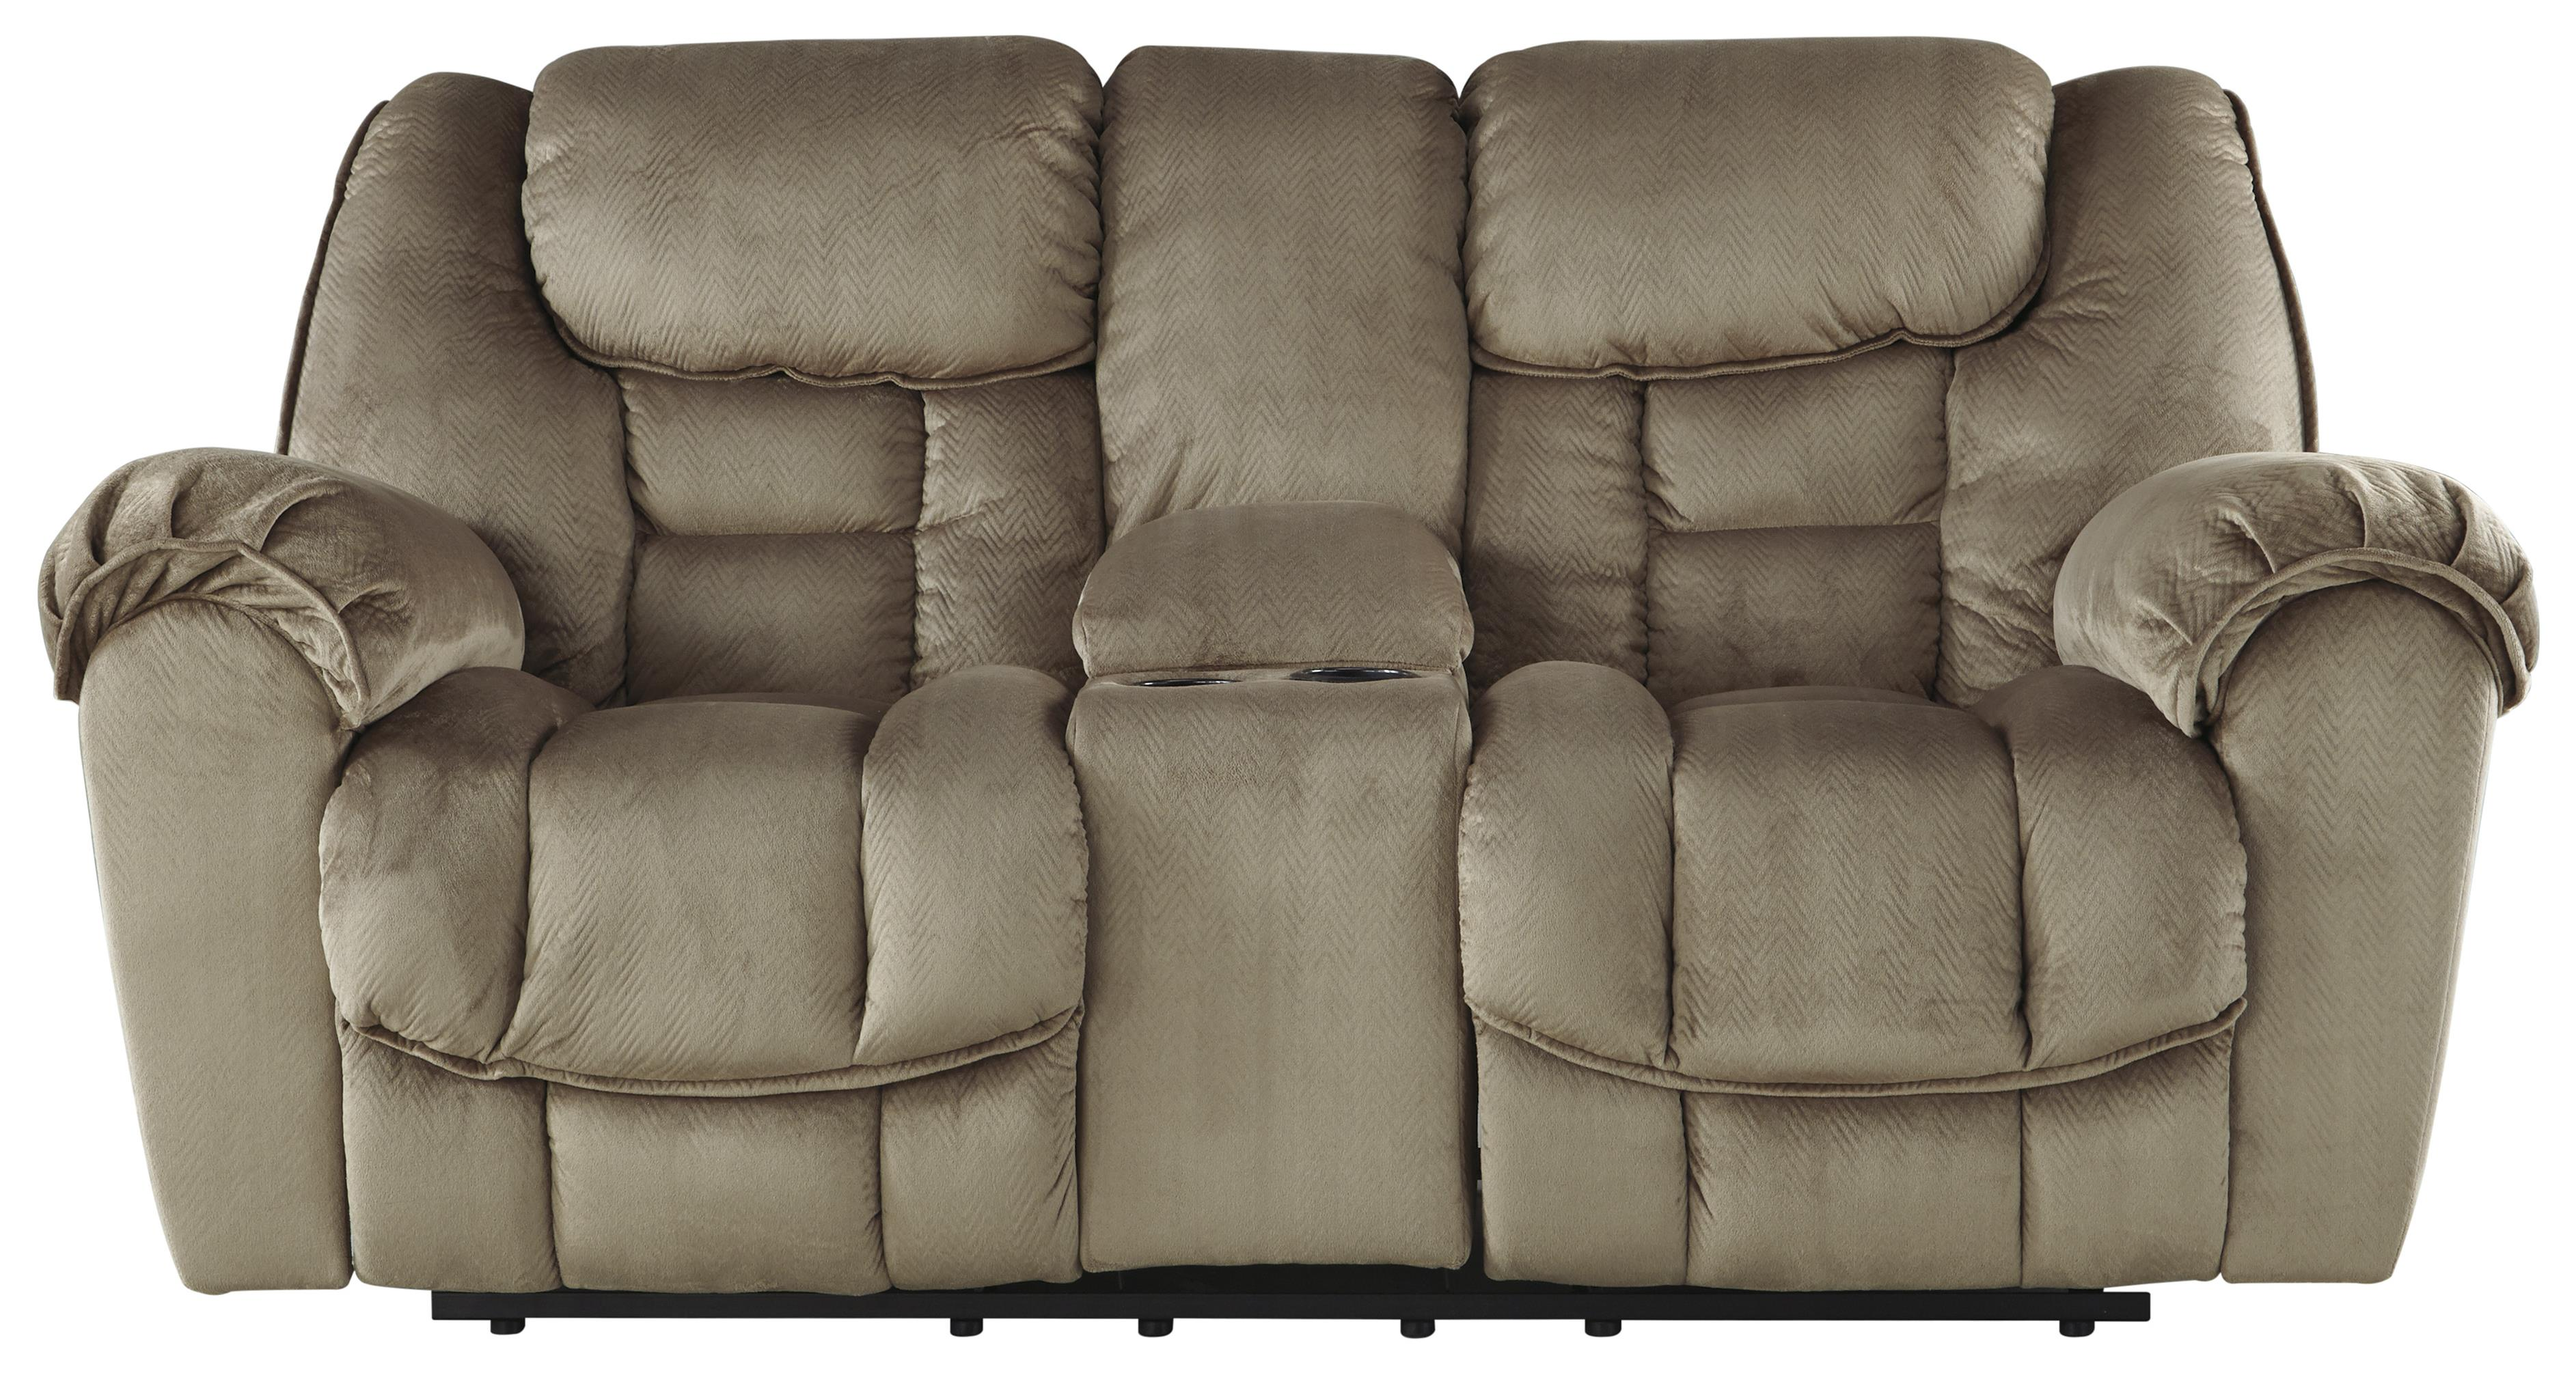 Ashley/Benchcraft Jodoca Glider Reclining Loveseat w/ Console - Item Number: 3660143